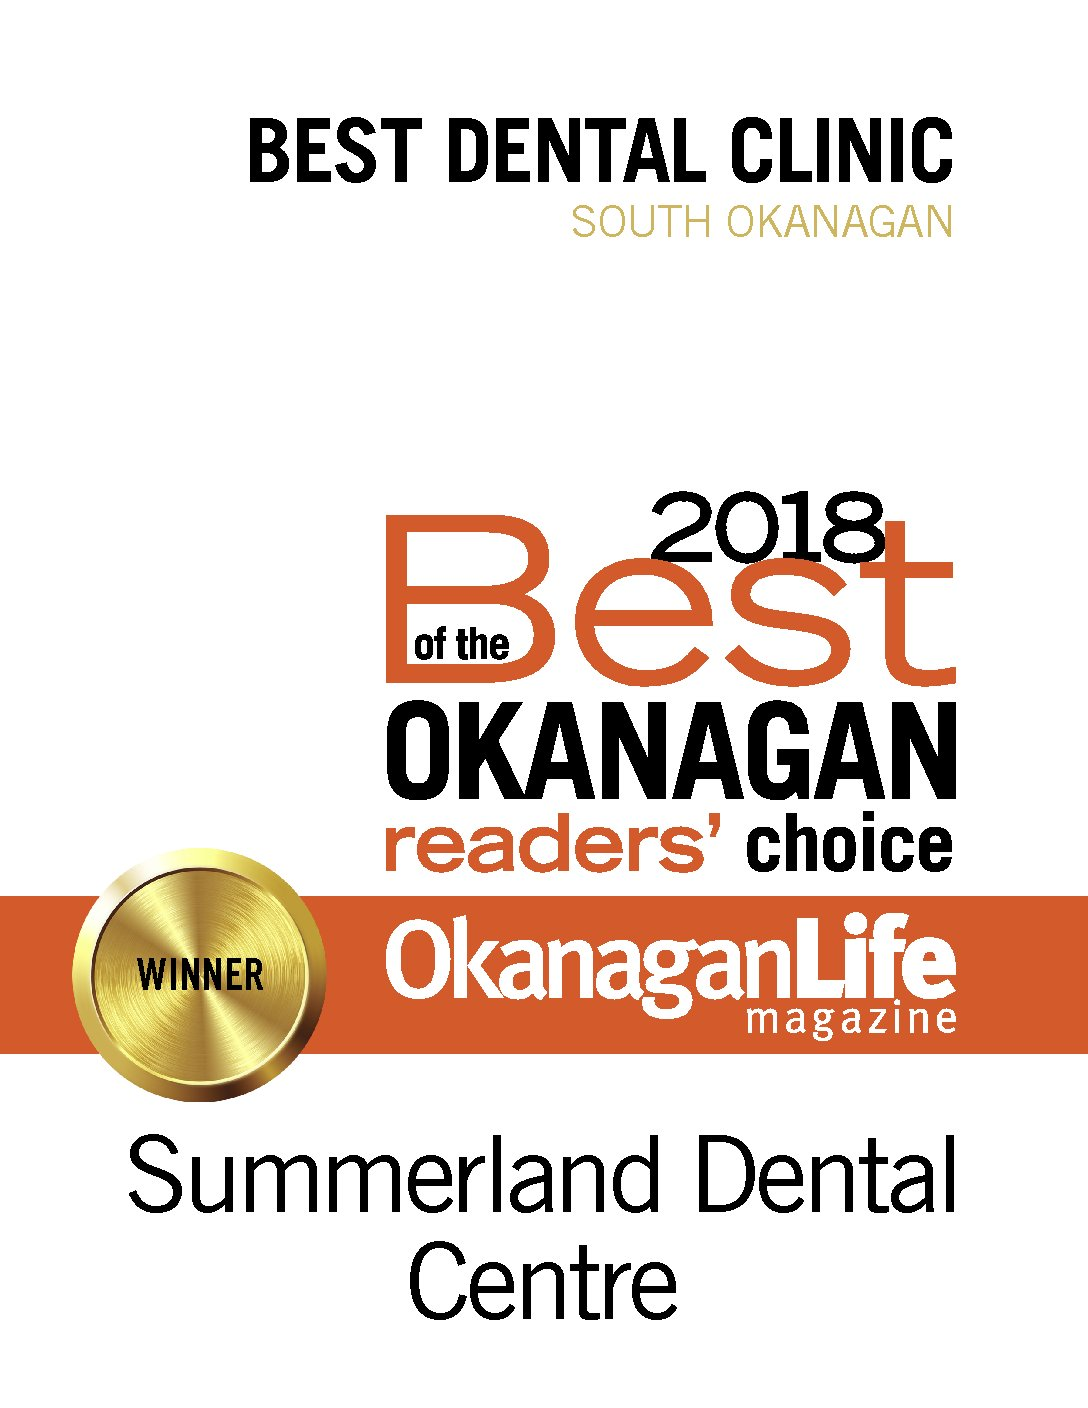 Summerland Dental Centre